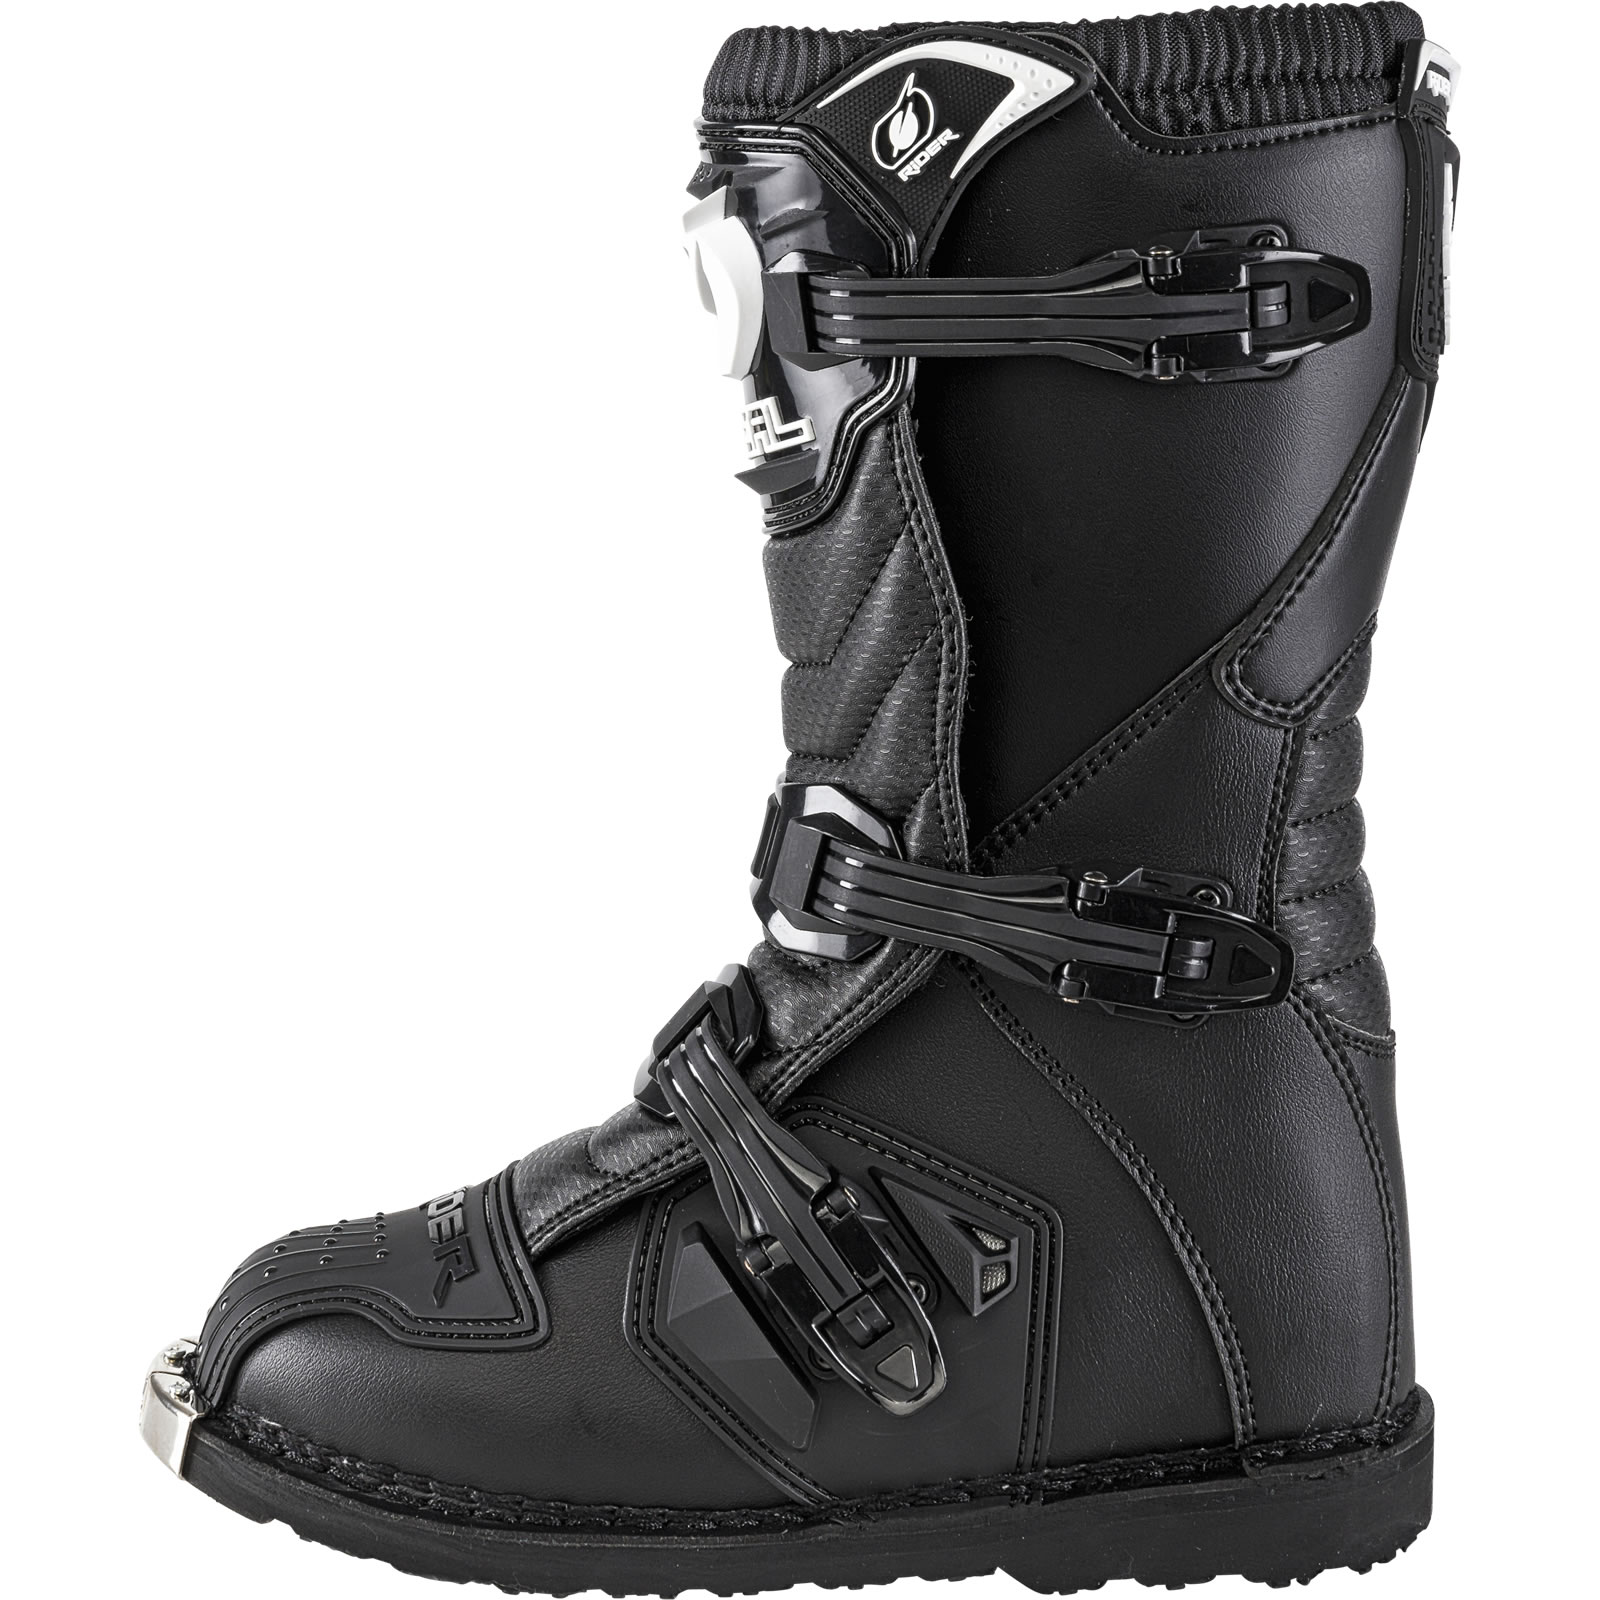 b370cc457c3a Oneal Rider US Kids Motocross Boots Youth Childrens Off Road MX Moto ...